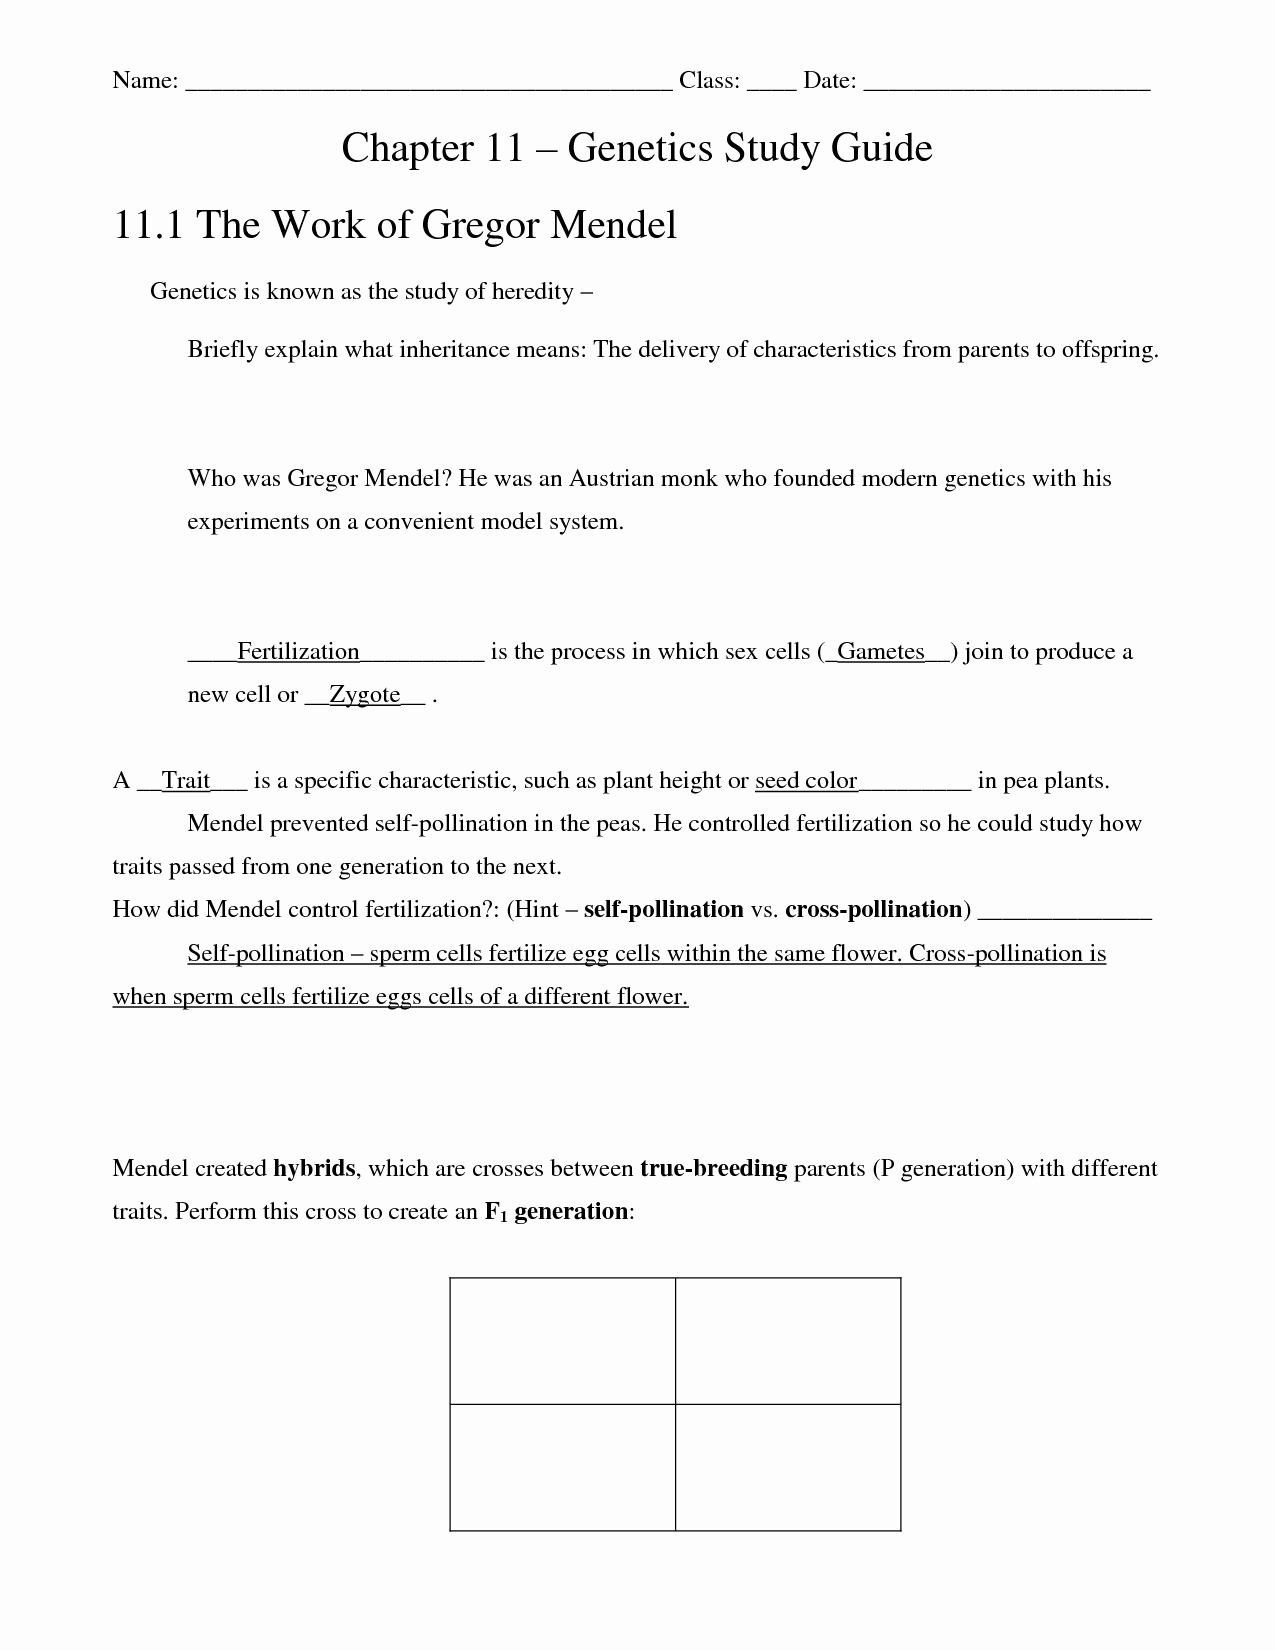 Introduction to Chemistry Worksheet Elegant 57 Chapter 1 Introduction to Chemistry Worksheet Answers